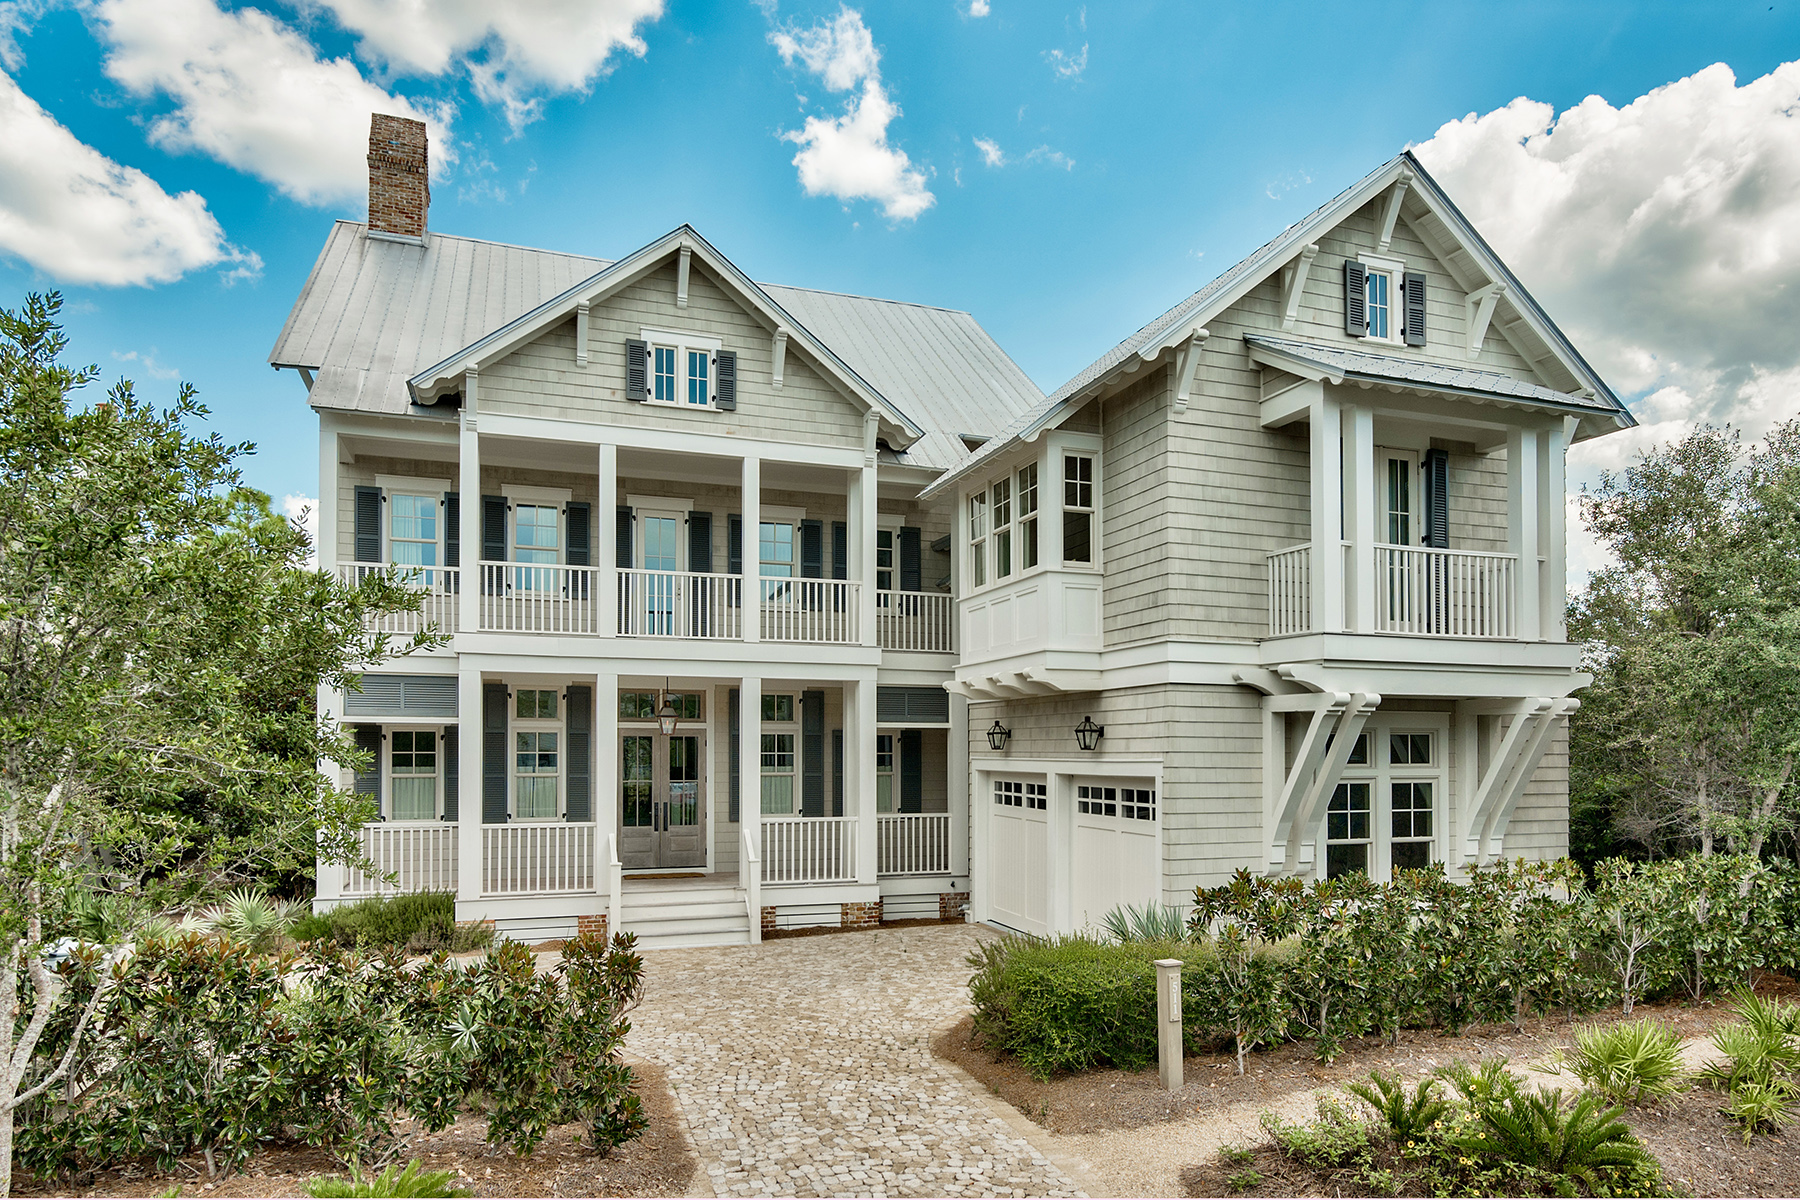 Single Family Home for Sale at A MAGNET FOR FINE LIVING IN AN EQUALLY FINE LOCATION 511 Western Lake Drive Watercolor, Santa Rosa Beach, Florida, 32459 United States